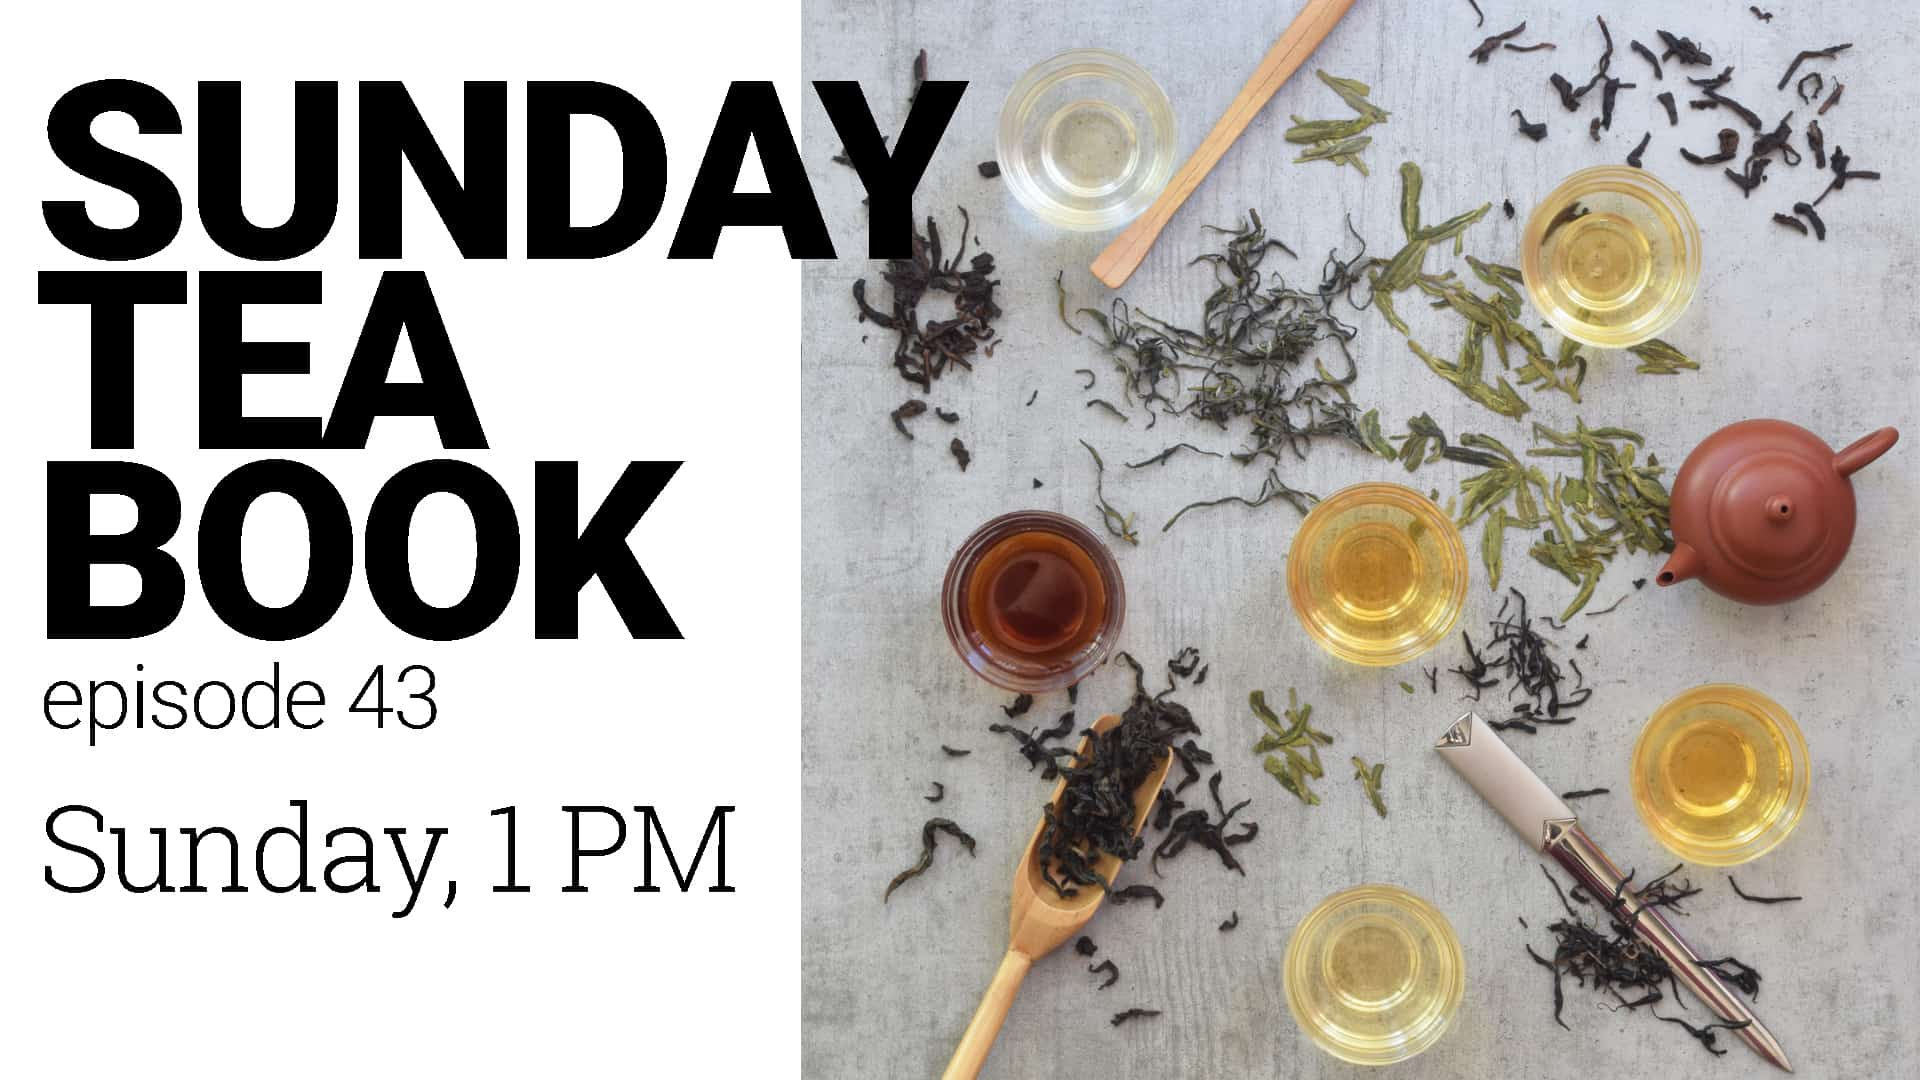 Sunday Tea Book ep.43 | The Origin of 6 Tea Types - Chemical changes in tea and Tea Types